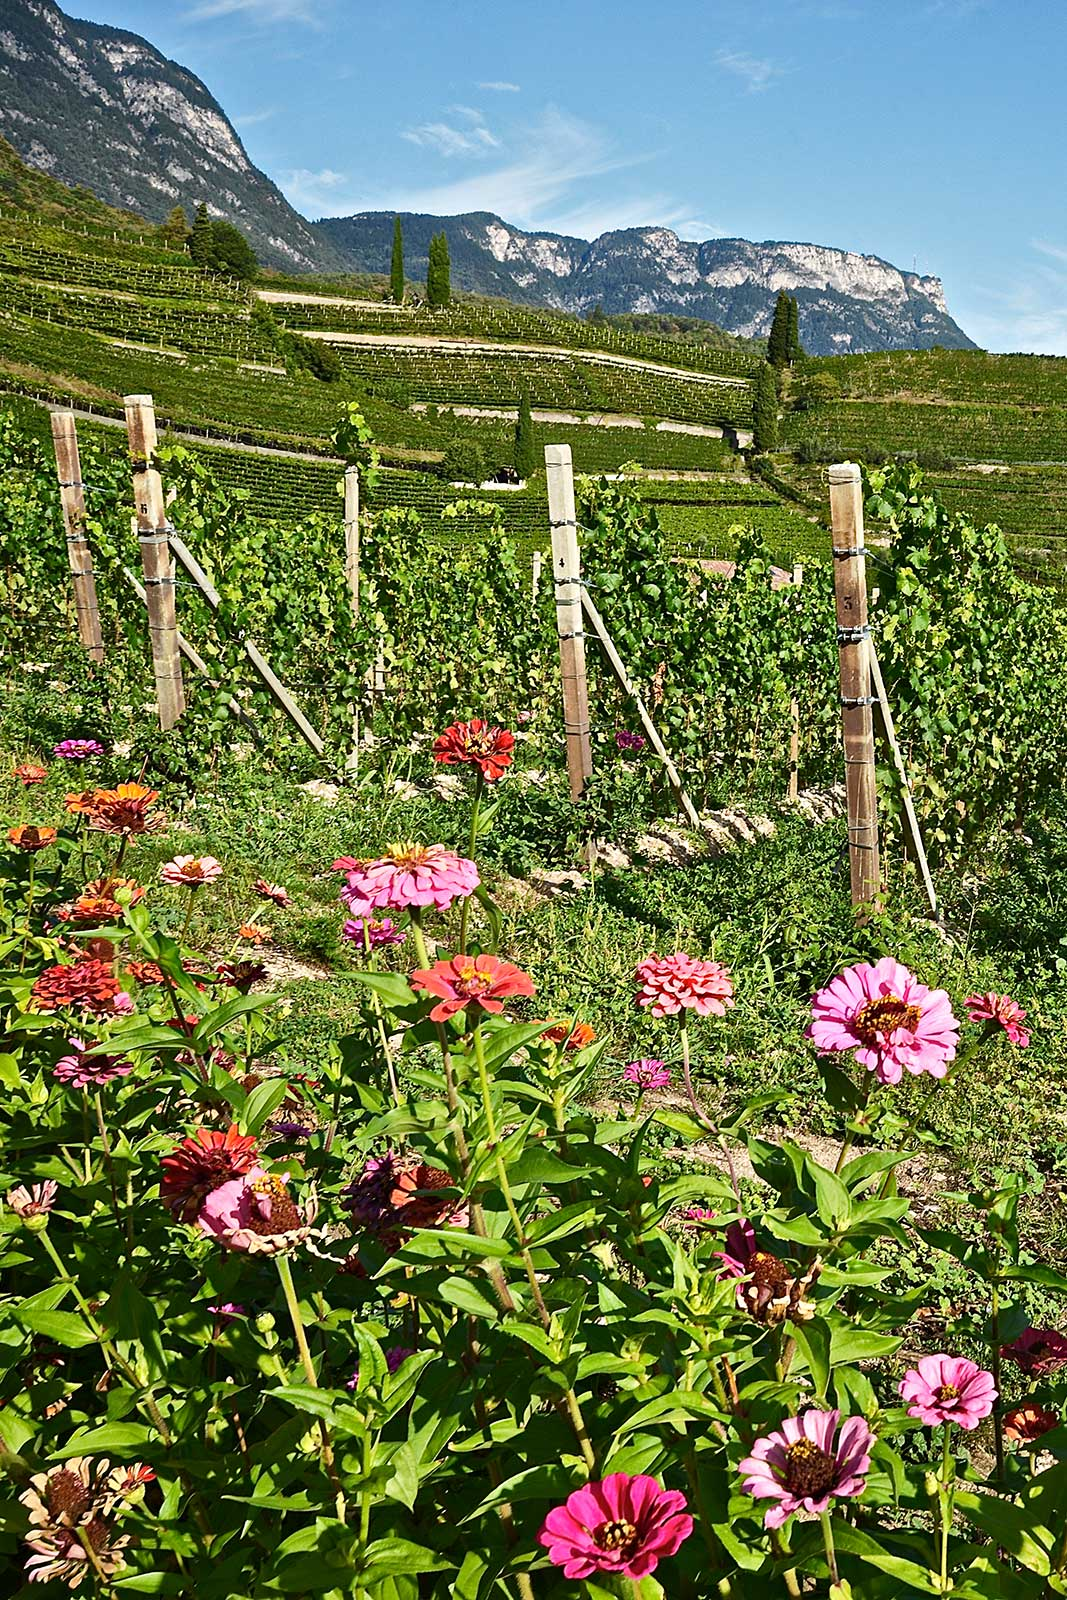 One of the dramatic Alto Adige vineyards that Alois Lageder tends to. ©Alois Lageder